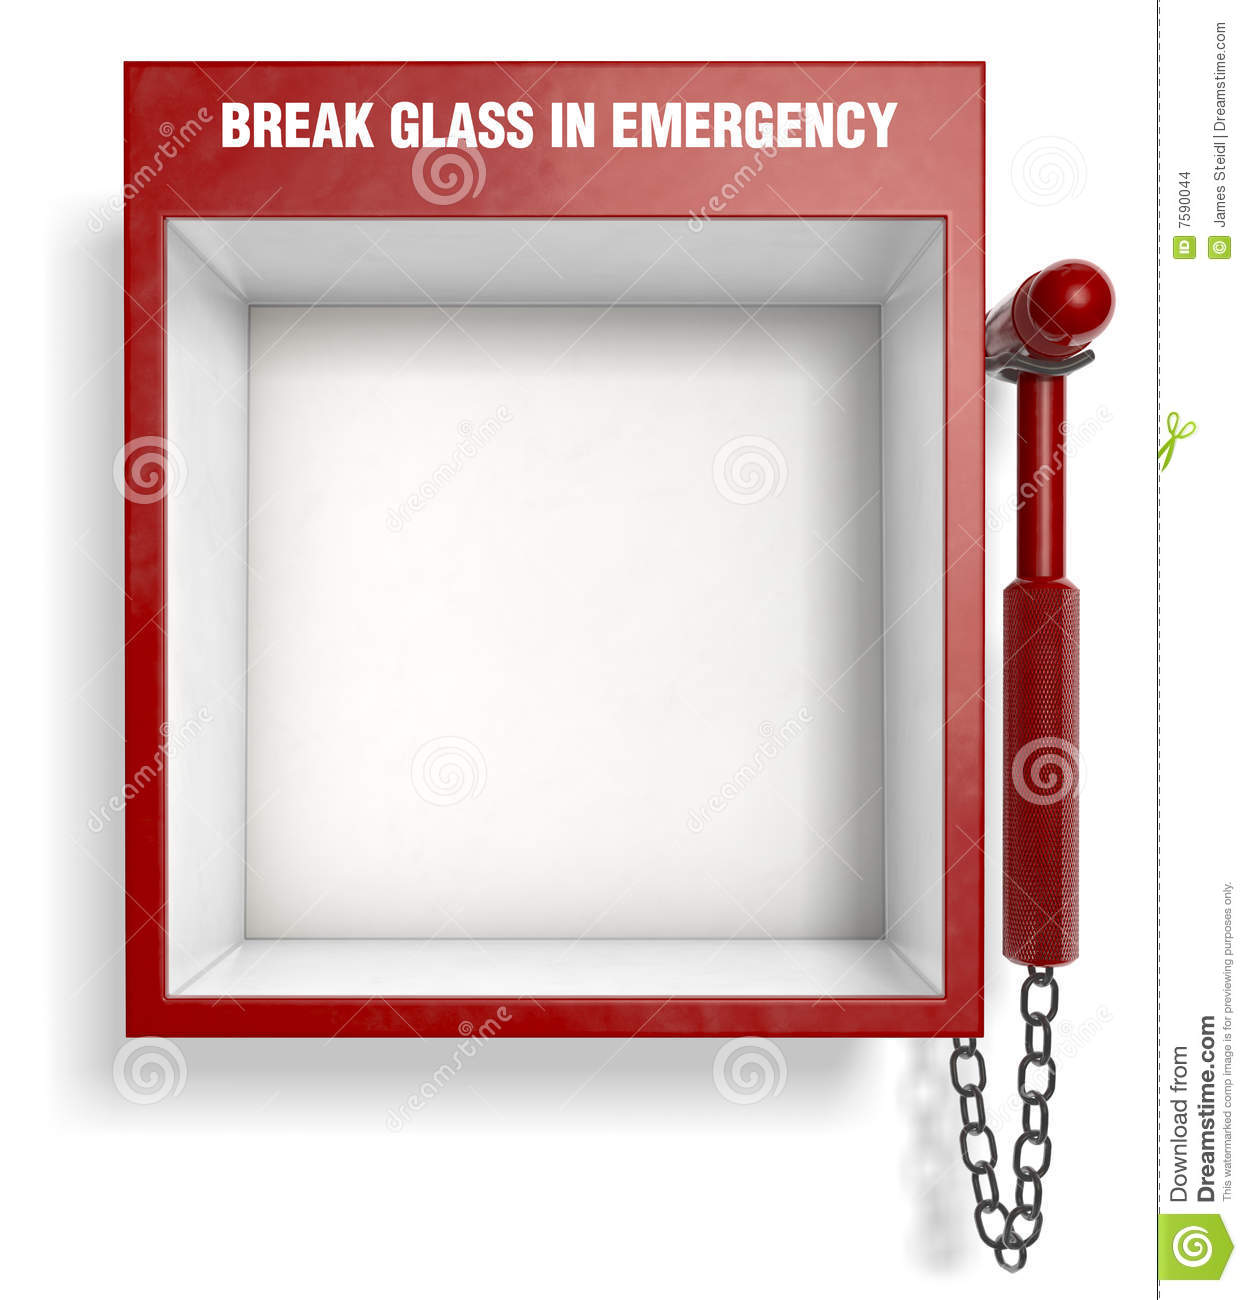 An empty fire extinguisher emergency box. Easily place your own ...